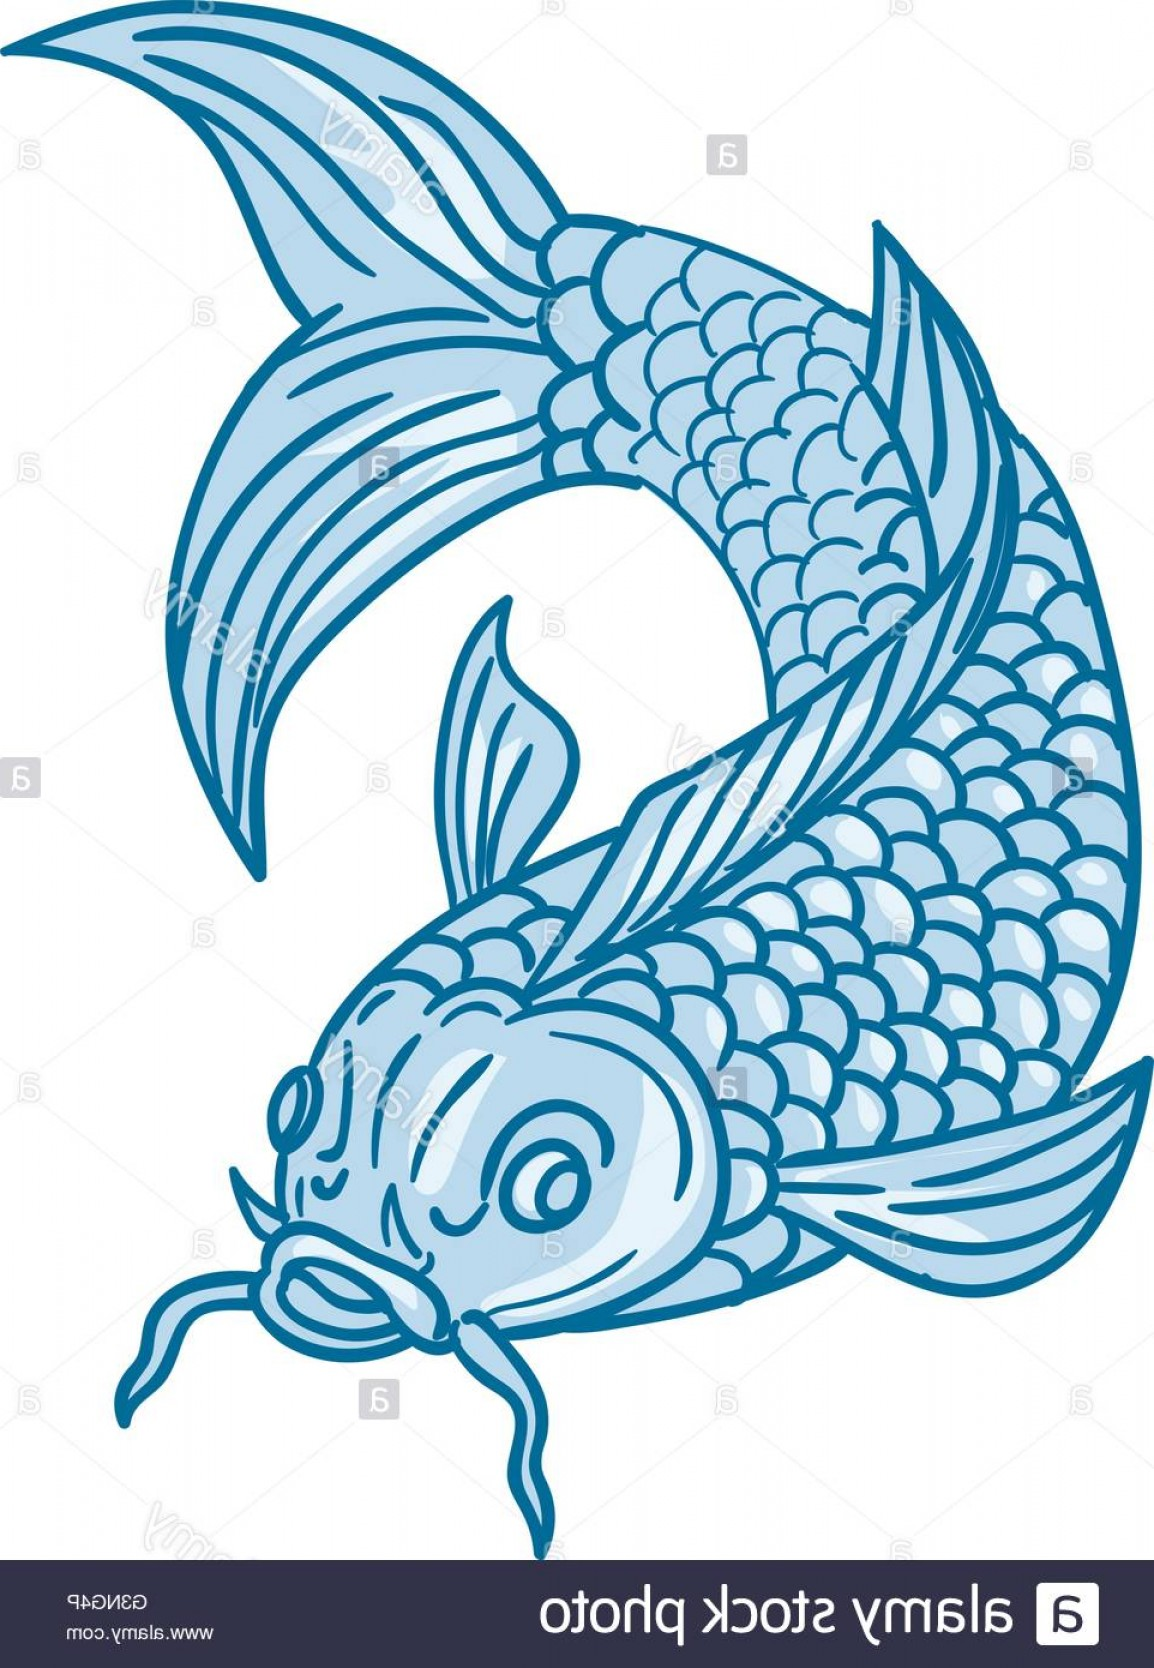 Speckled Trout Vector: Stock Photo Drawing Sketch Style Illustration Of A Trout Fish Diving Down Viewed